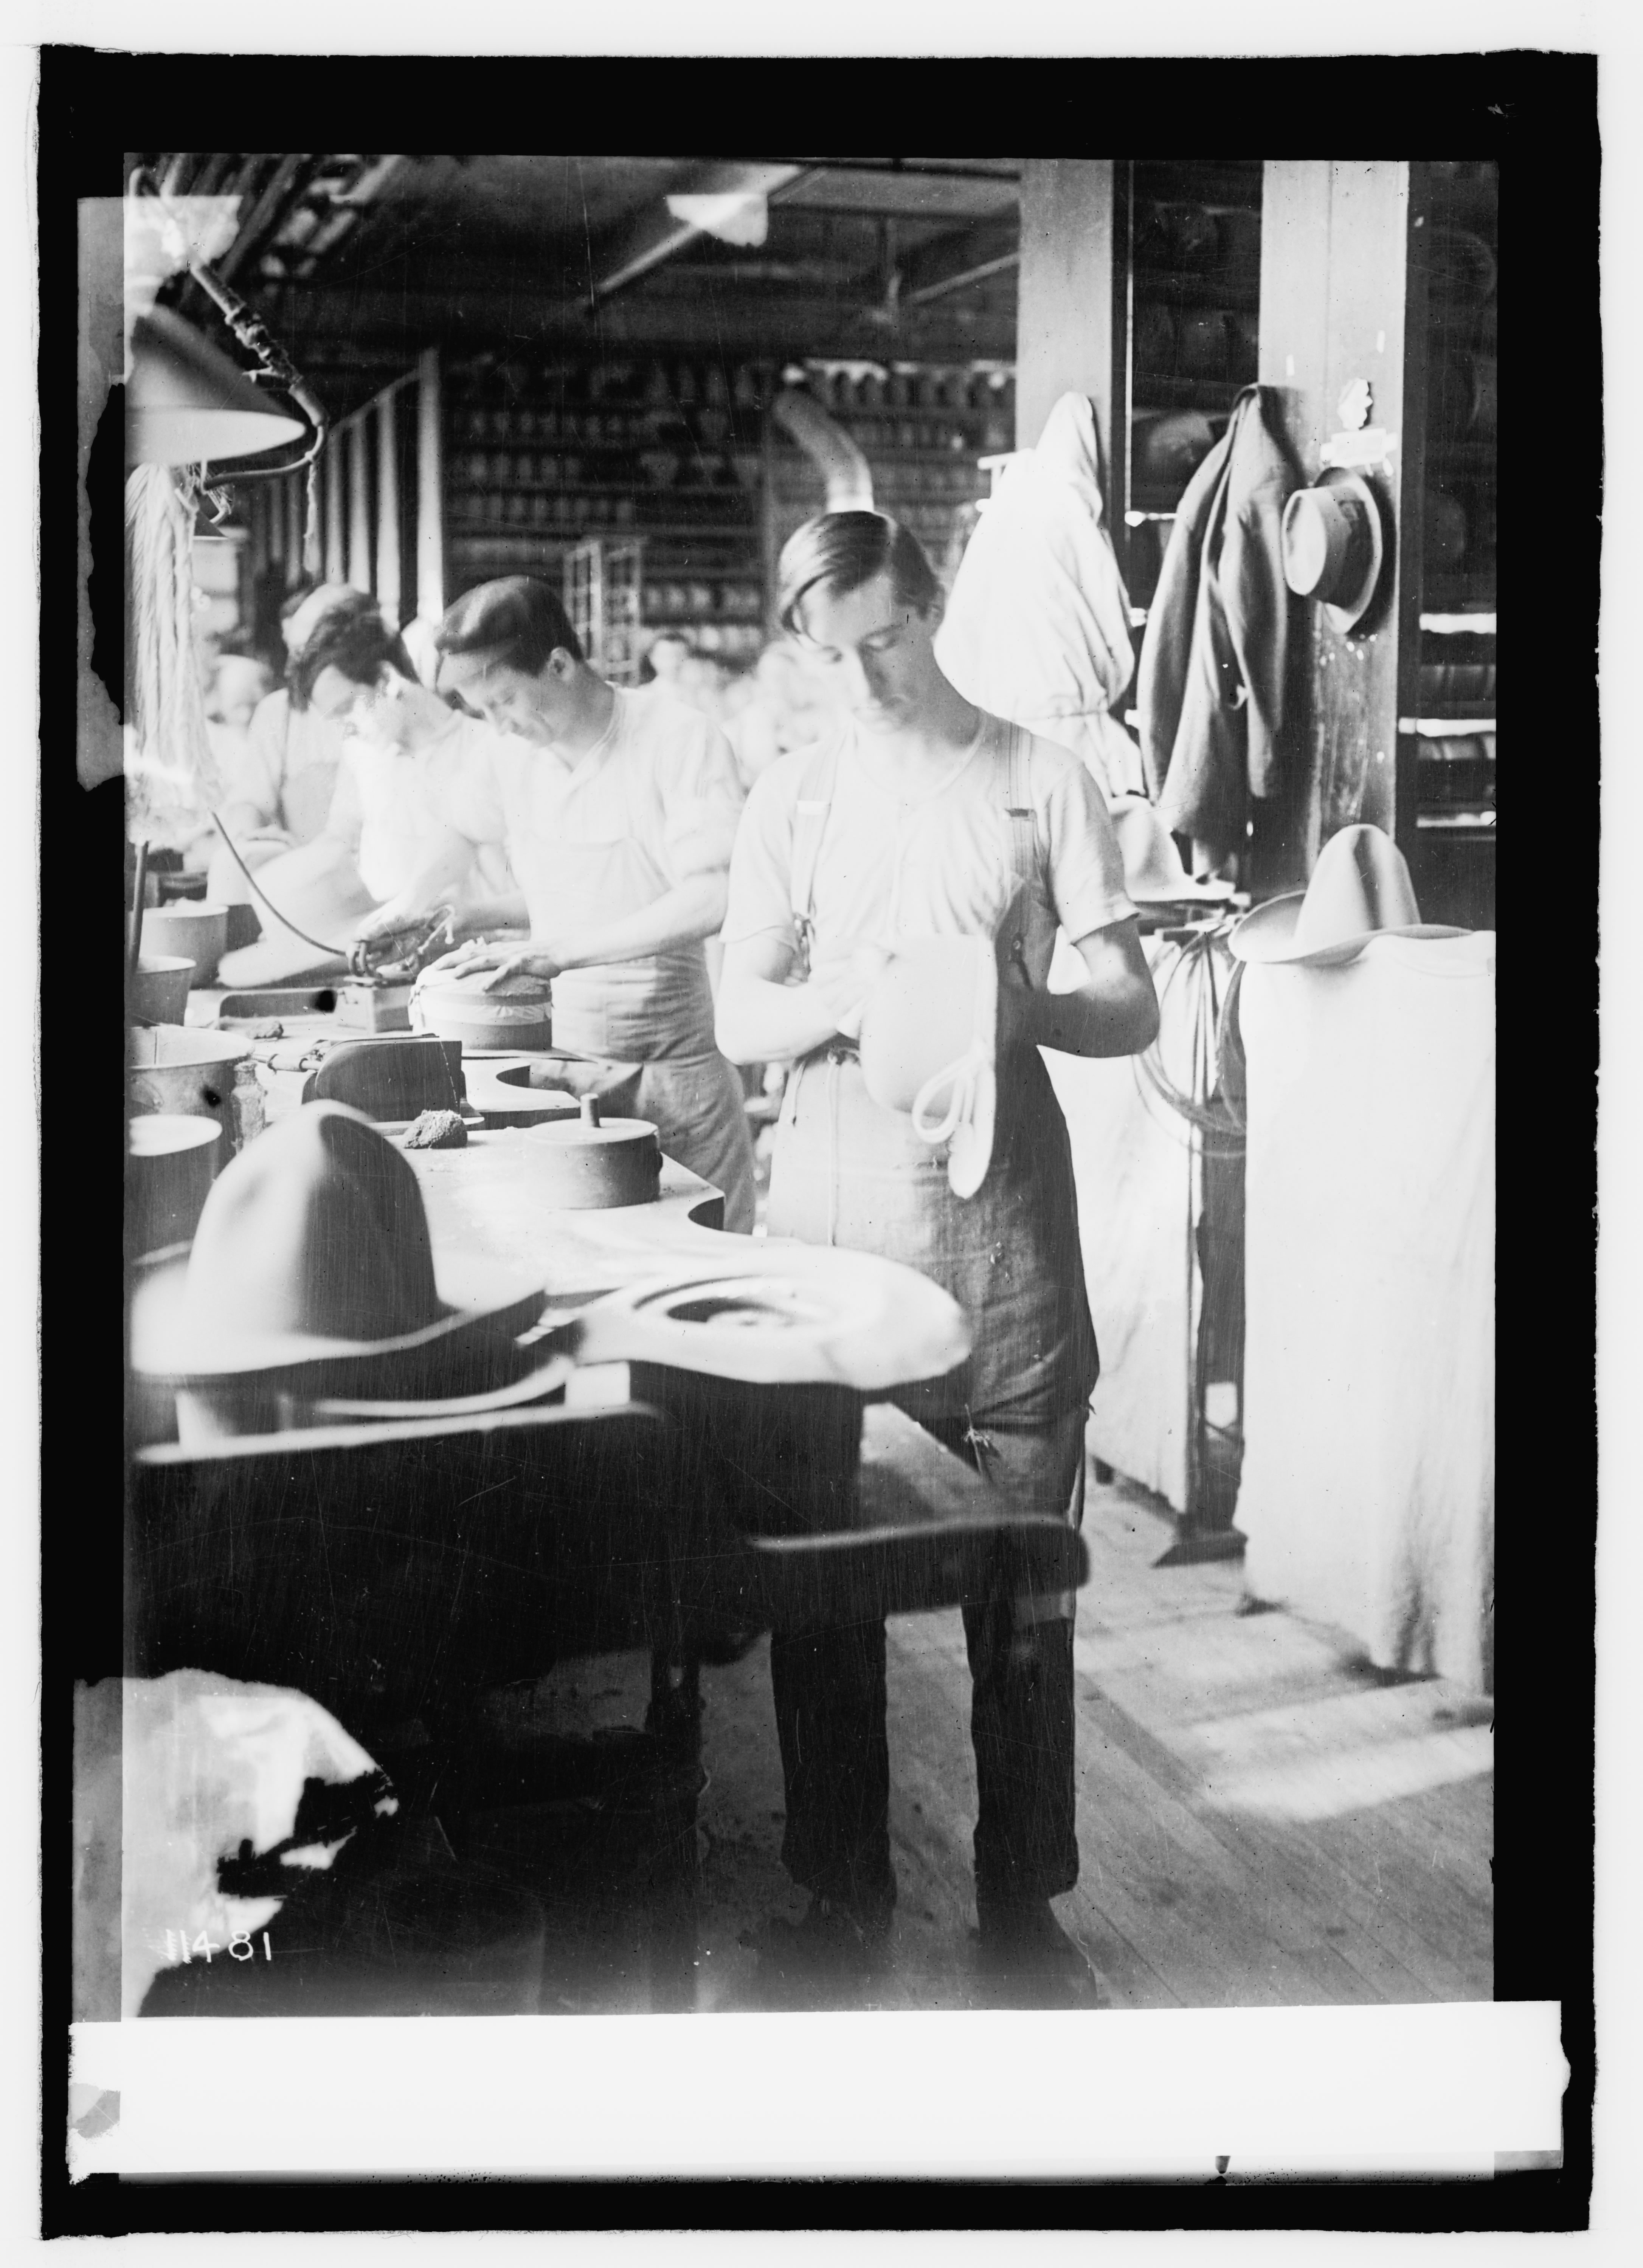 Stetson workers making U.S. Army Hats